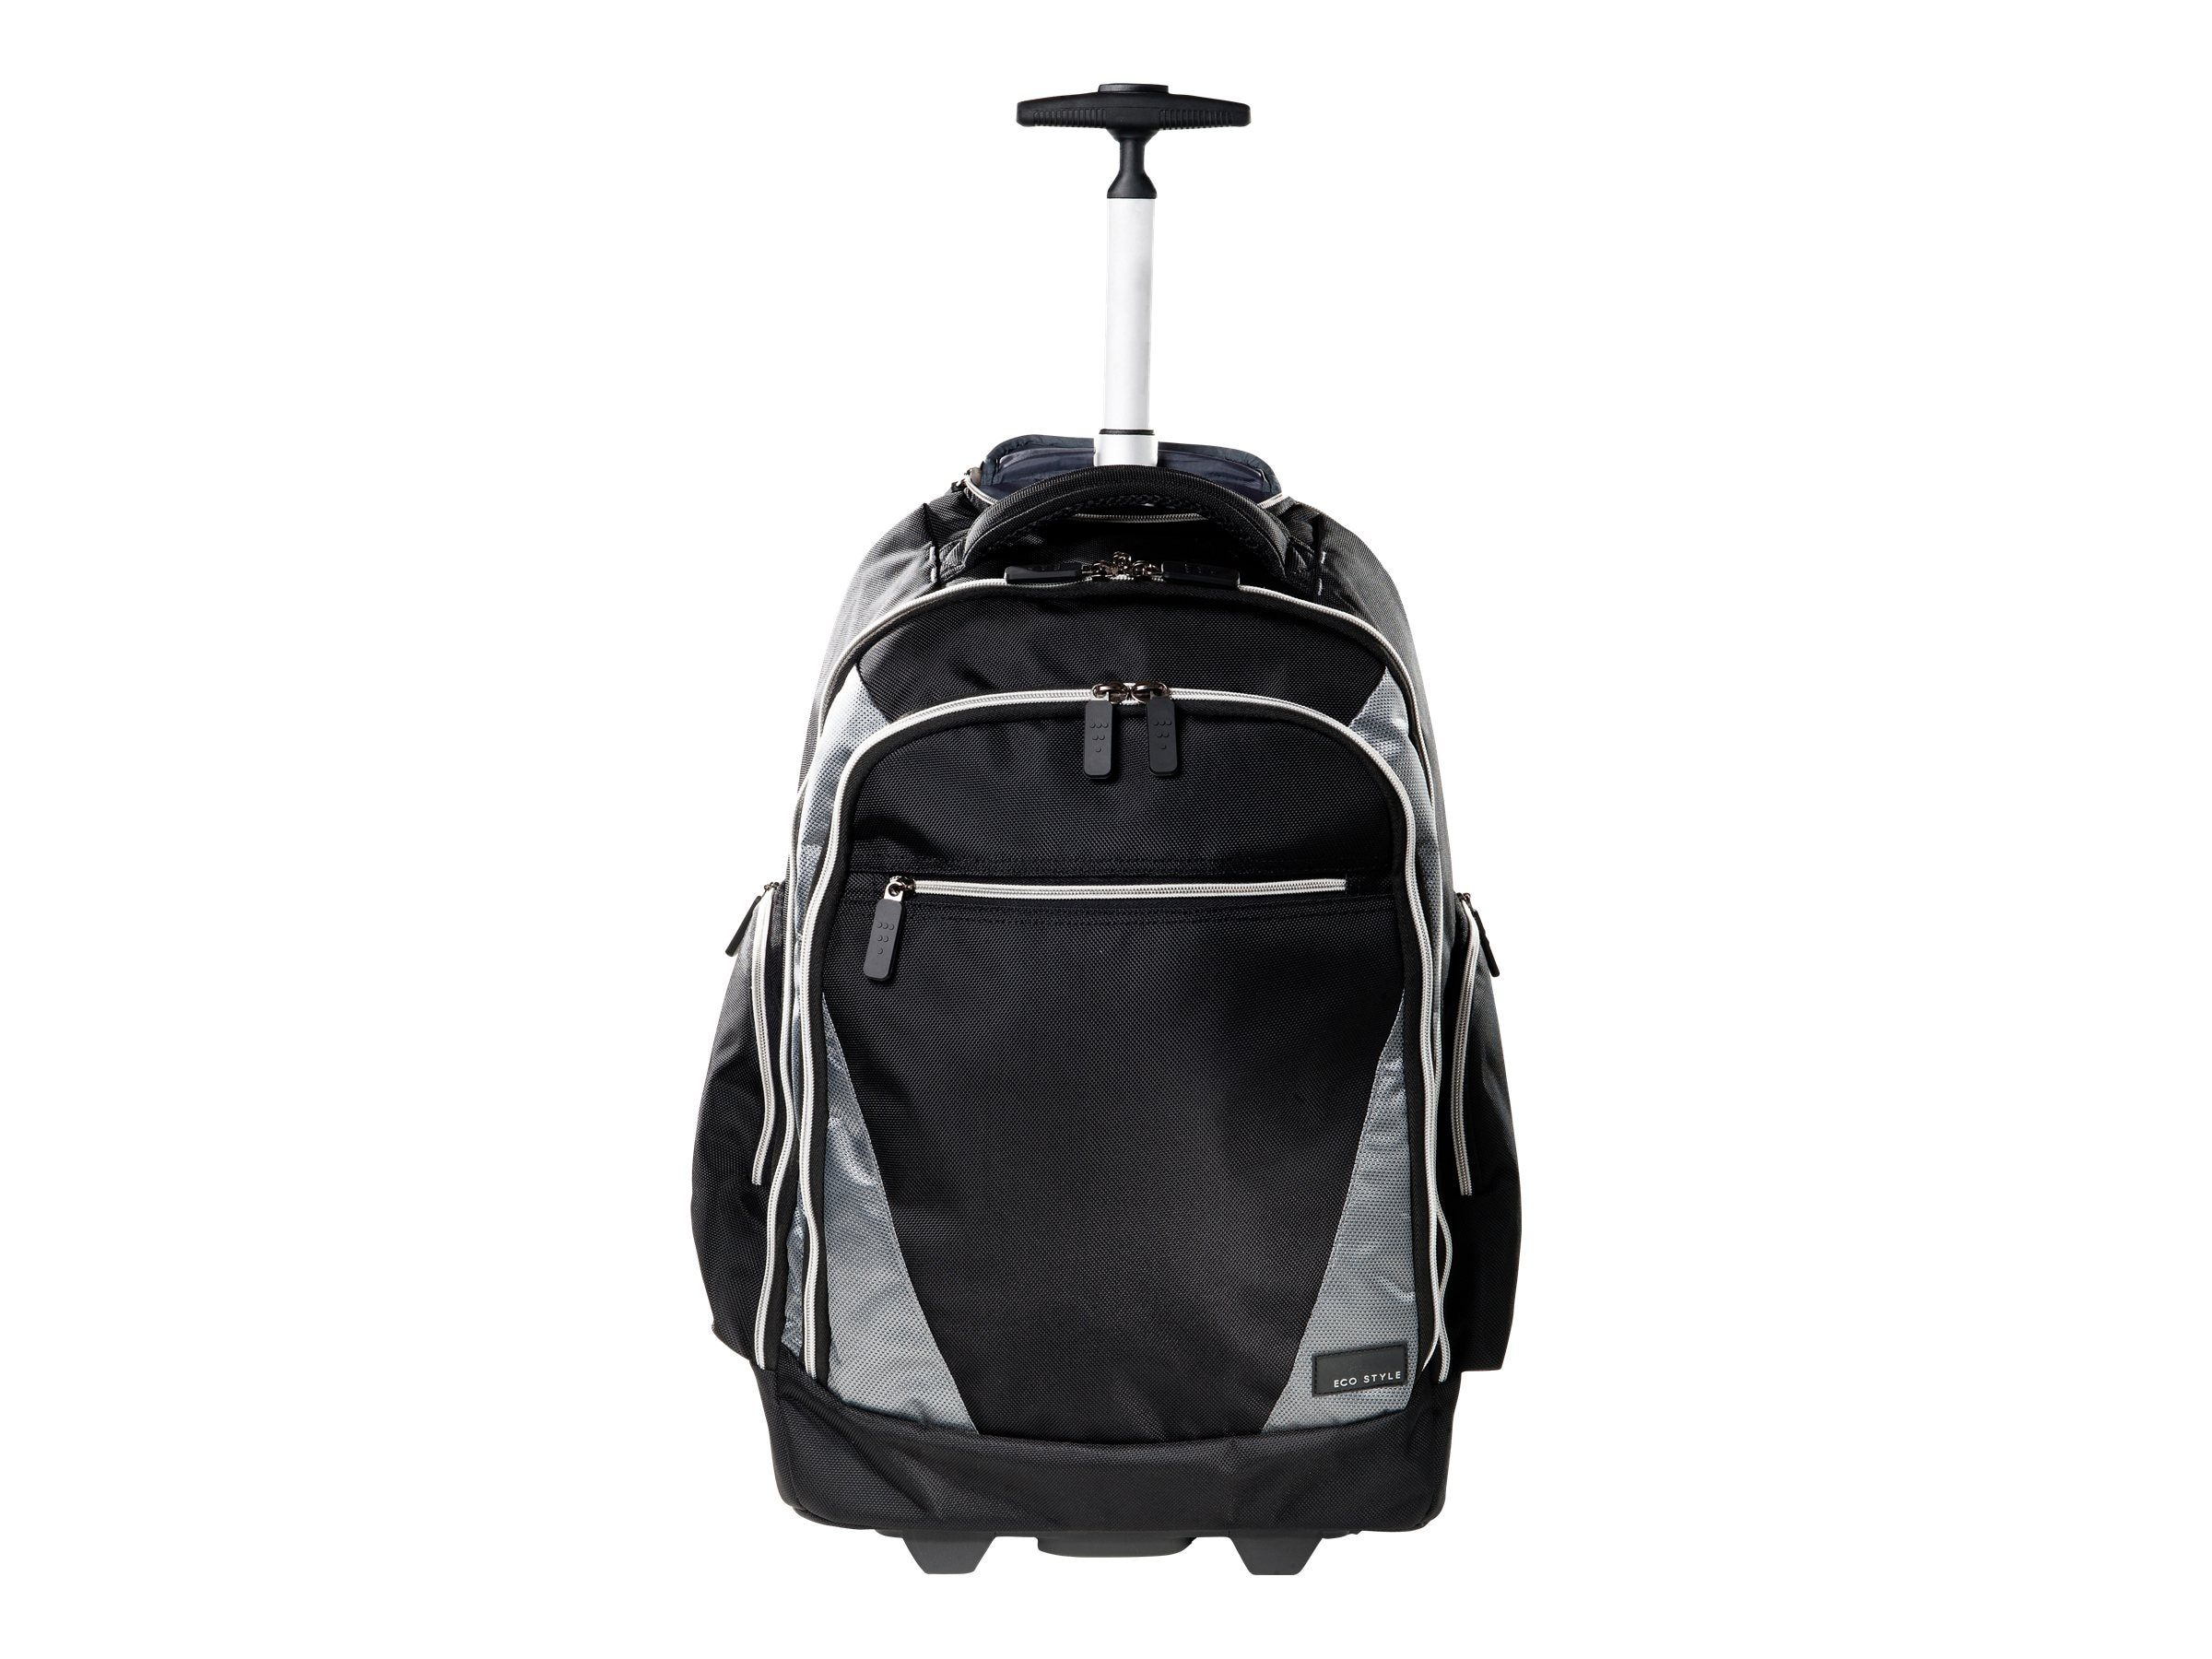 Eco Style Sports Voyage Rolling Backpack, EVOY-RB17, 17988588, Carrying Cases - Other